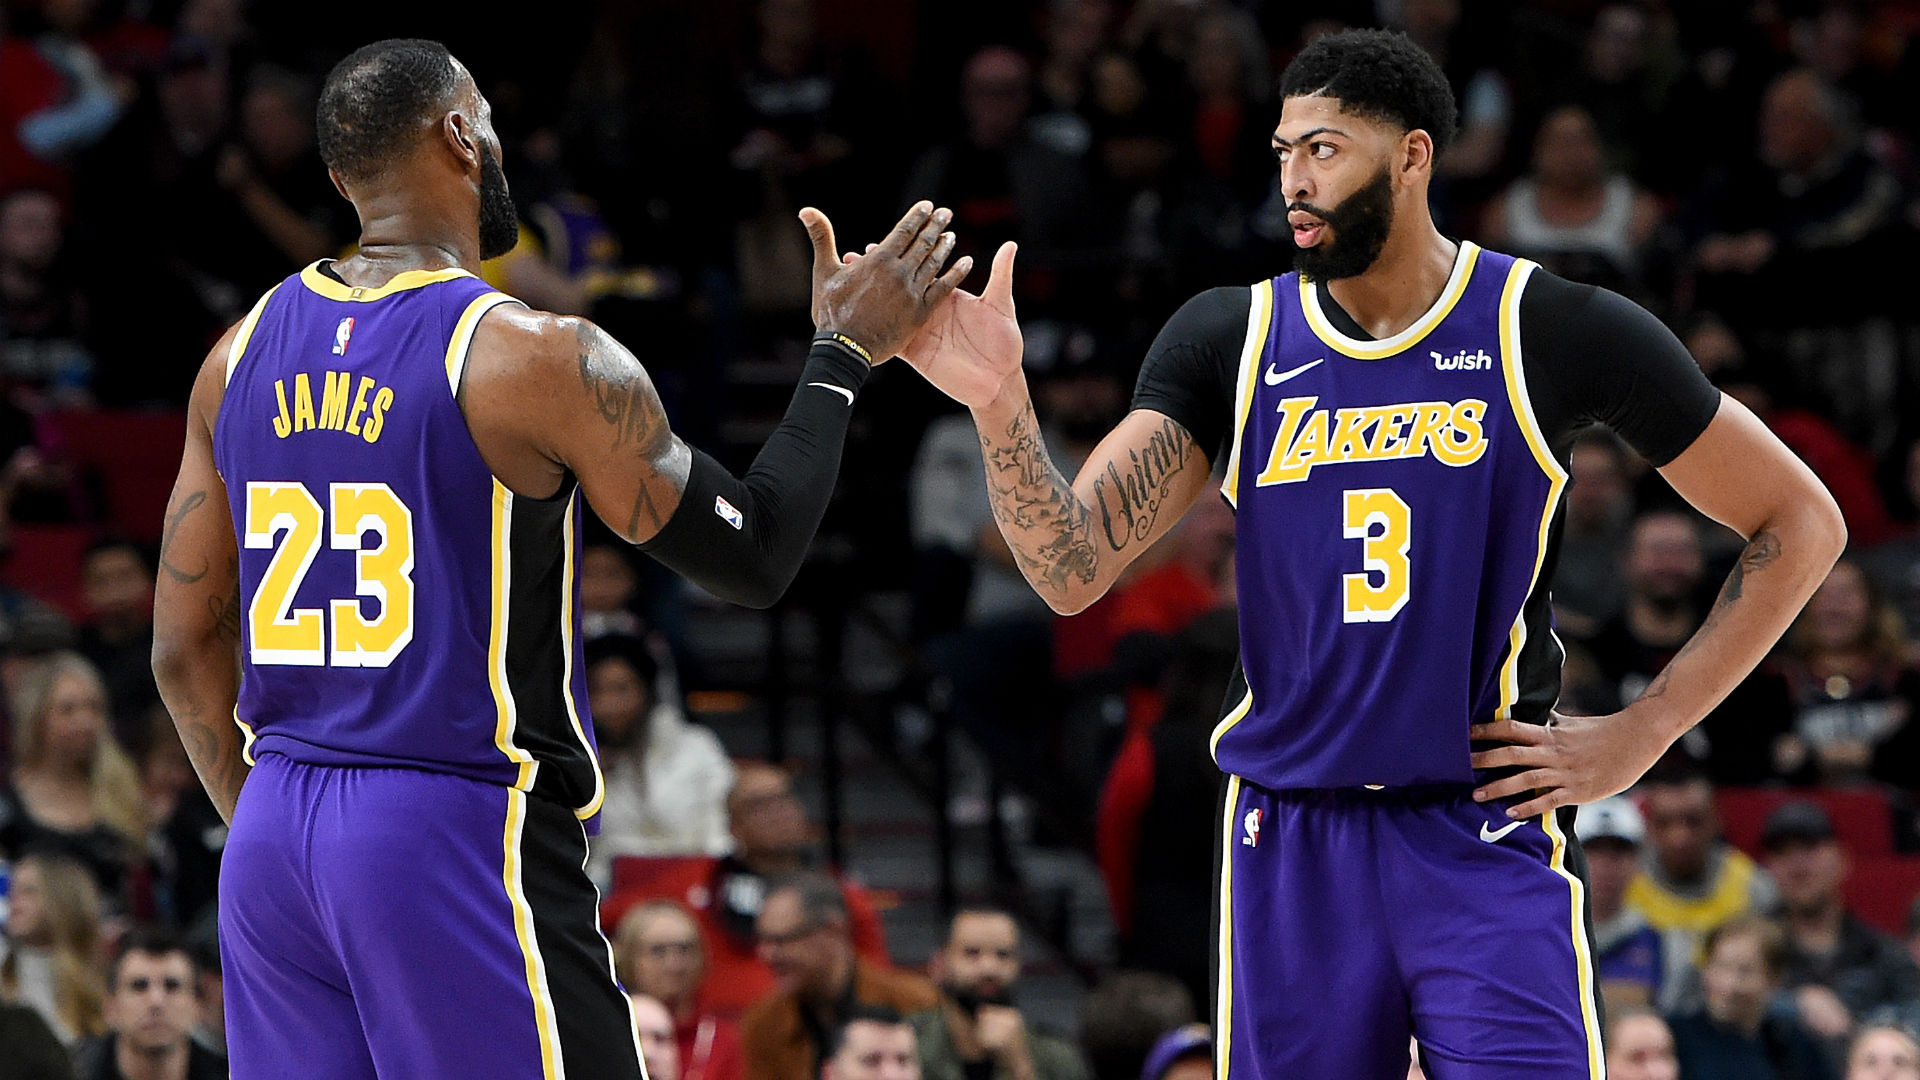 LeBron James, Anthony Davis and other Lakers share message of unity with protesters